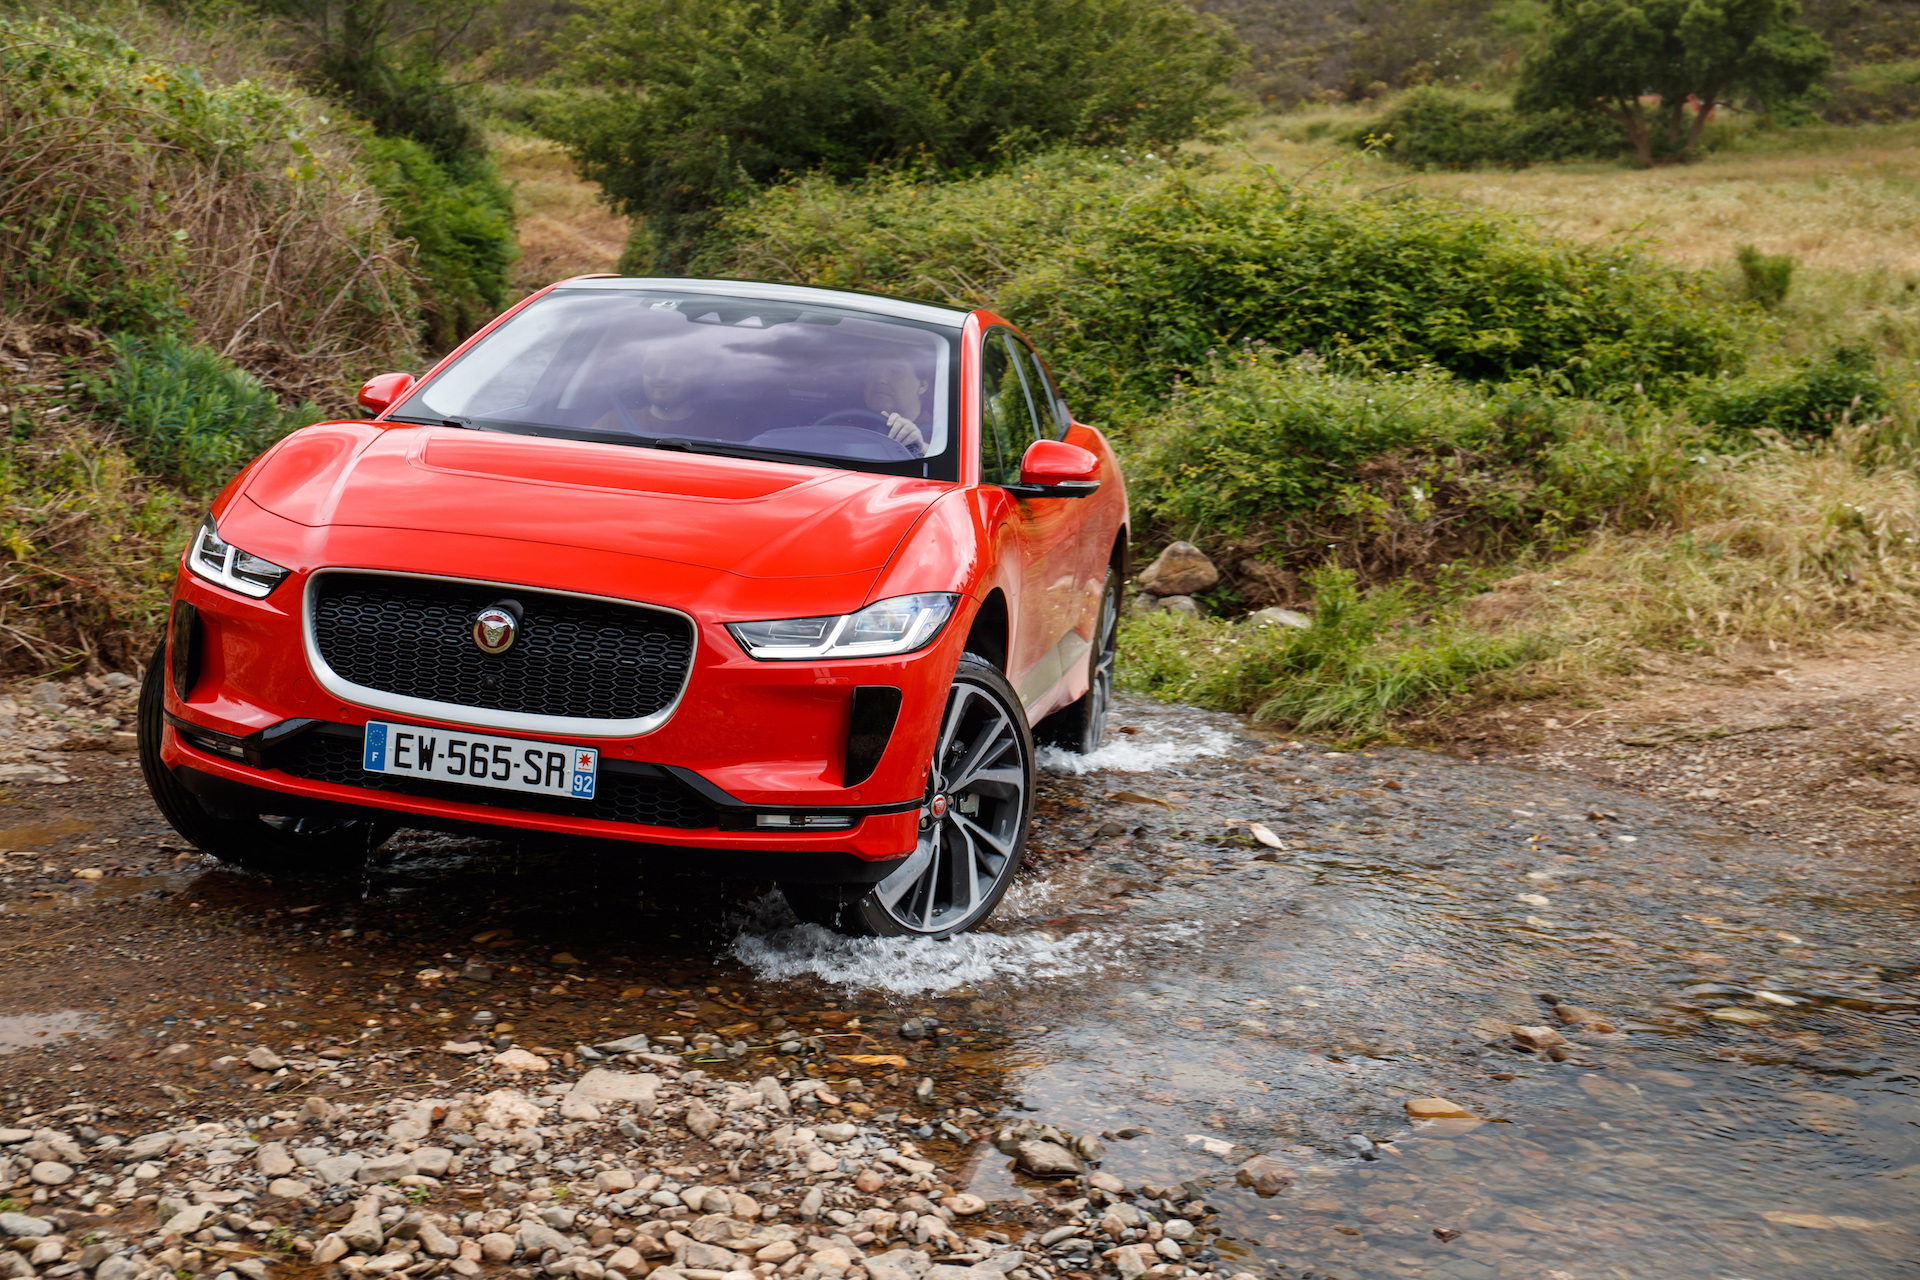 2020 Volvo Xc40 Electric Volvo Cars Review Release Raiacars Com